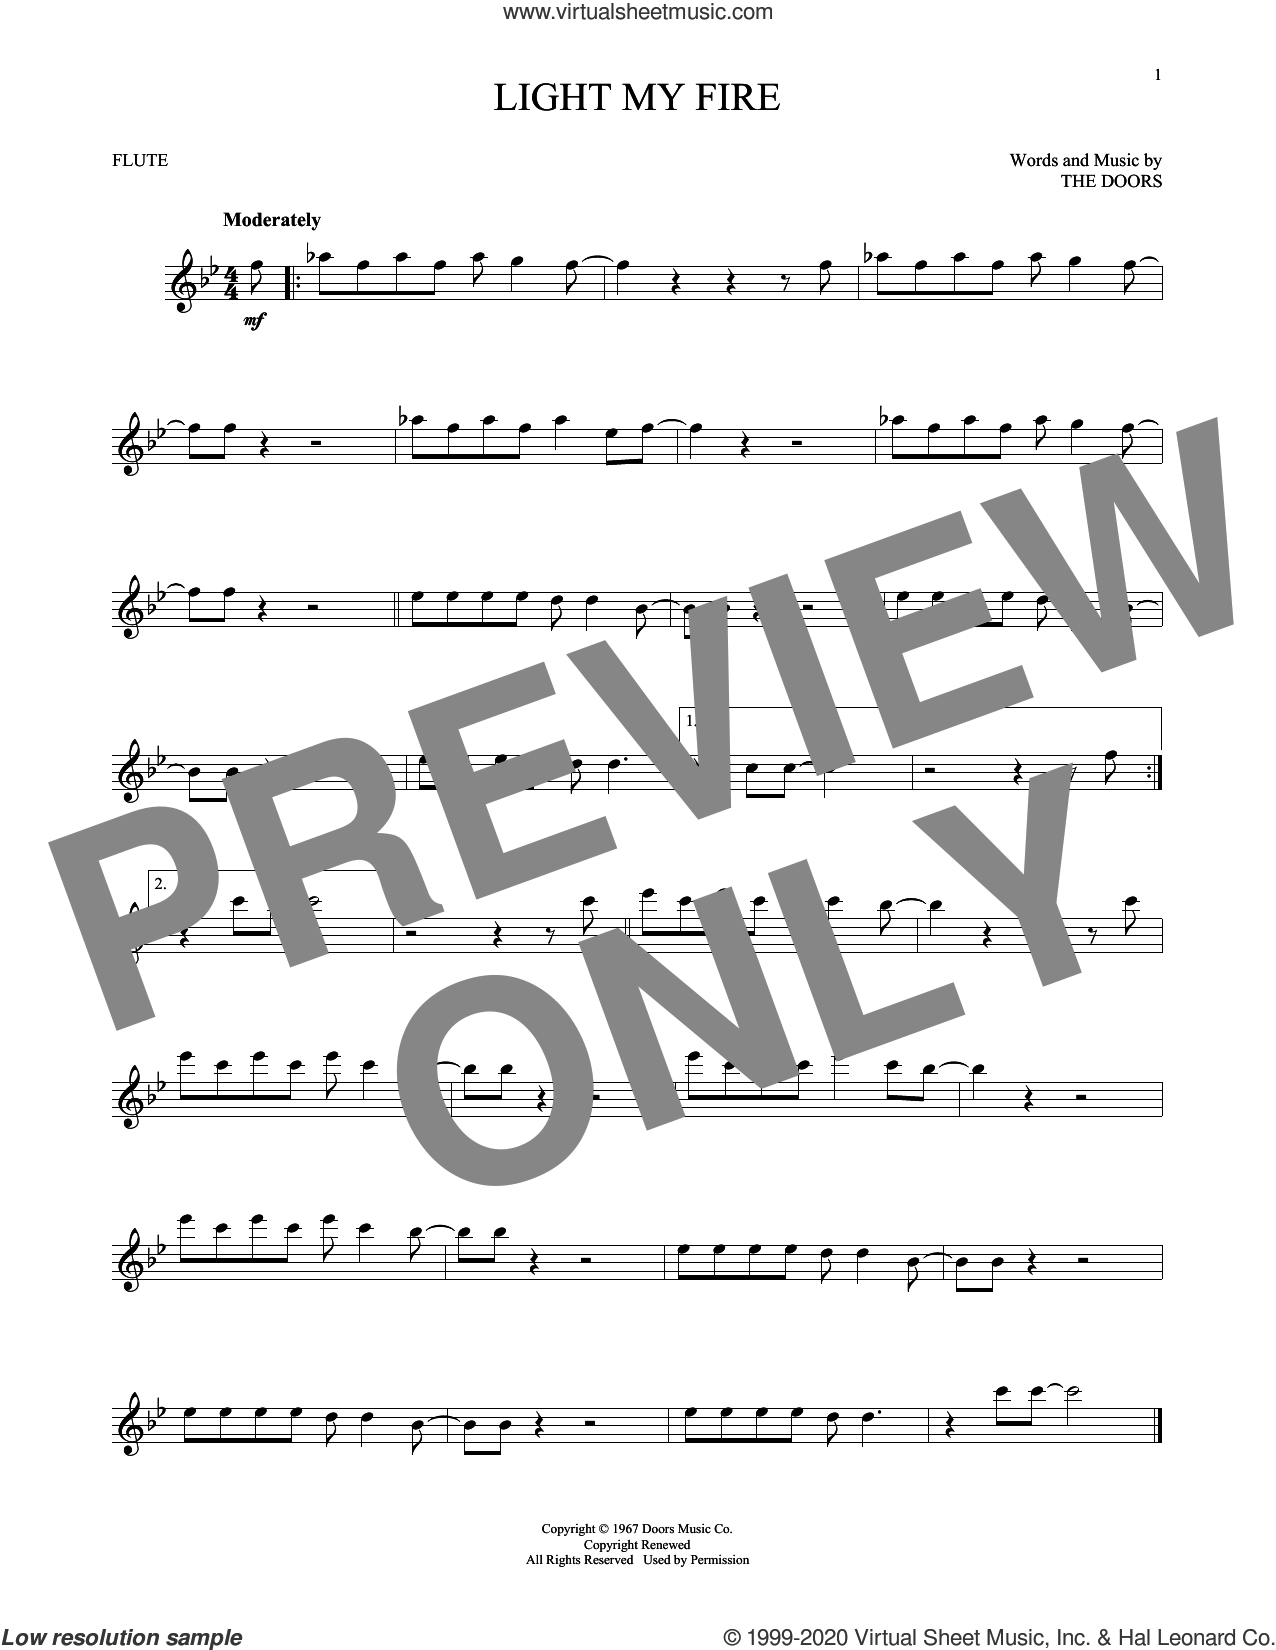 Light My Fire sheet music for flute solo by The Doors, intermediate skill level